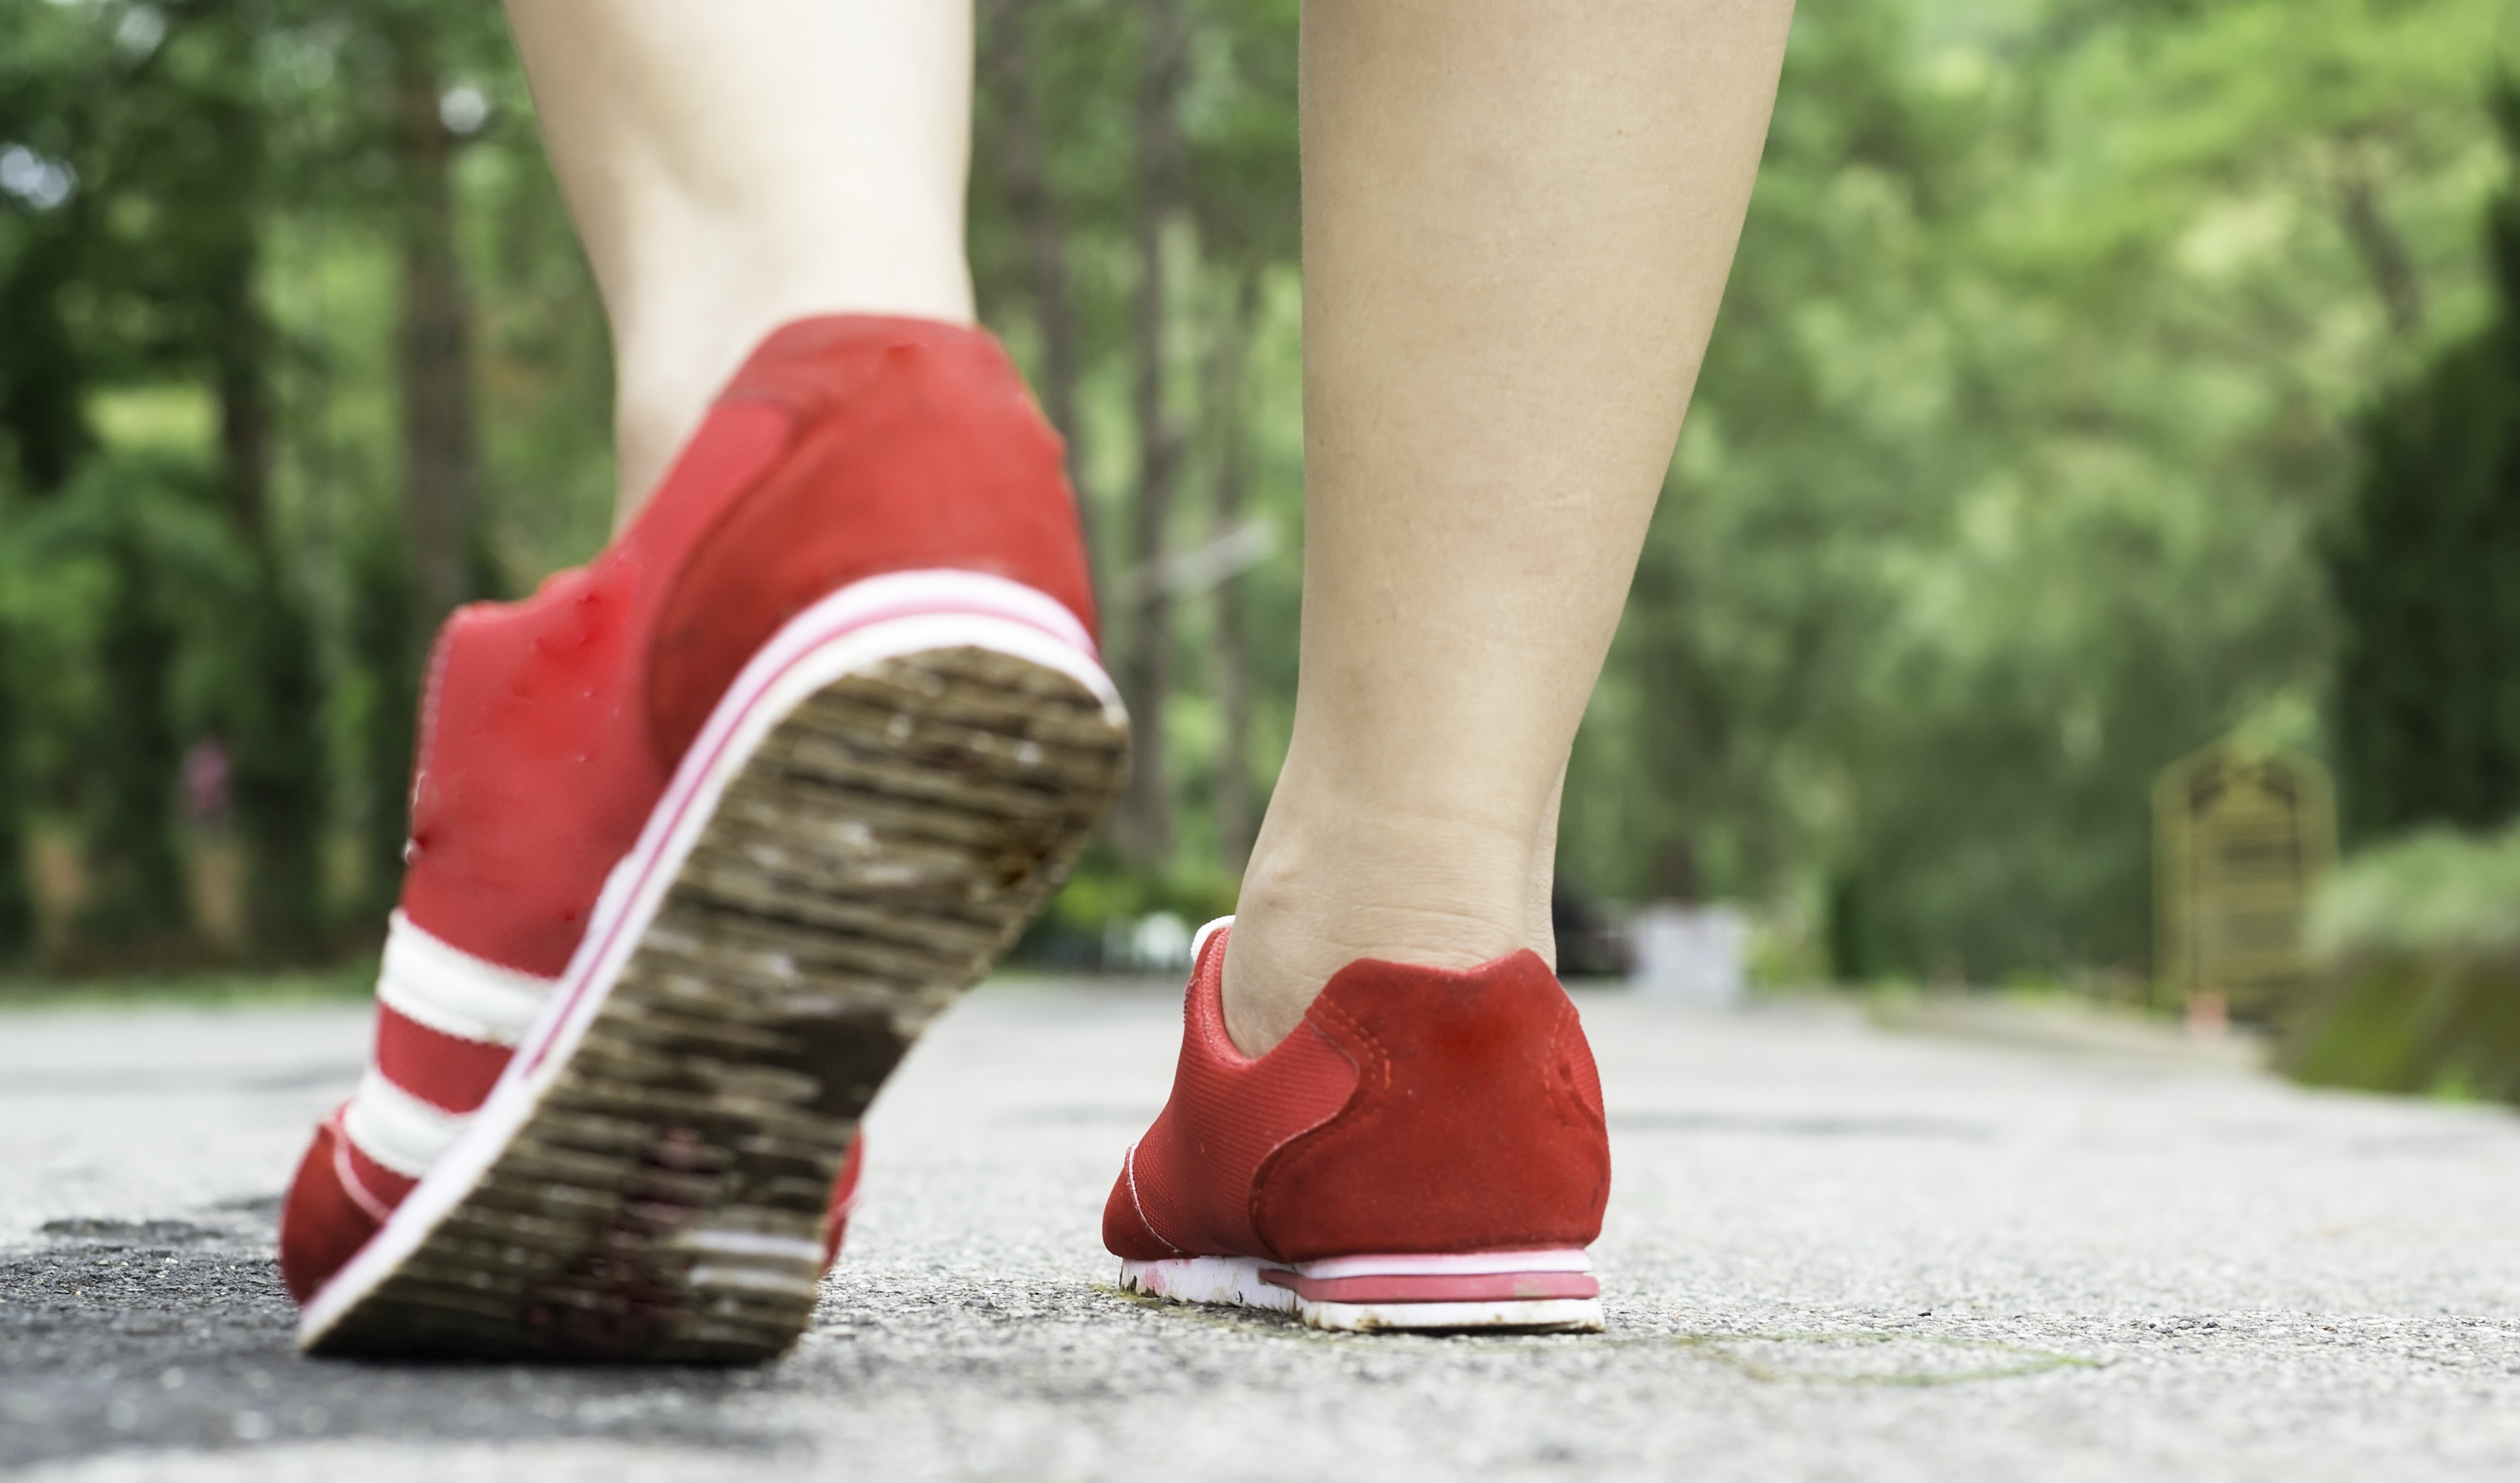 Exercise changes the way our bodies work at a molecular level